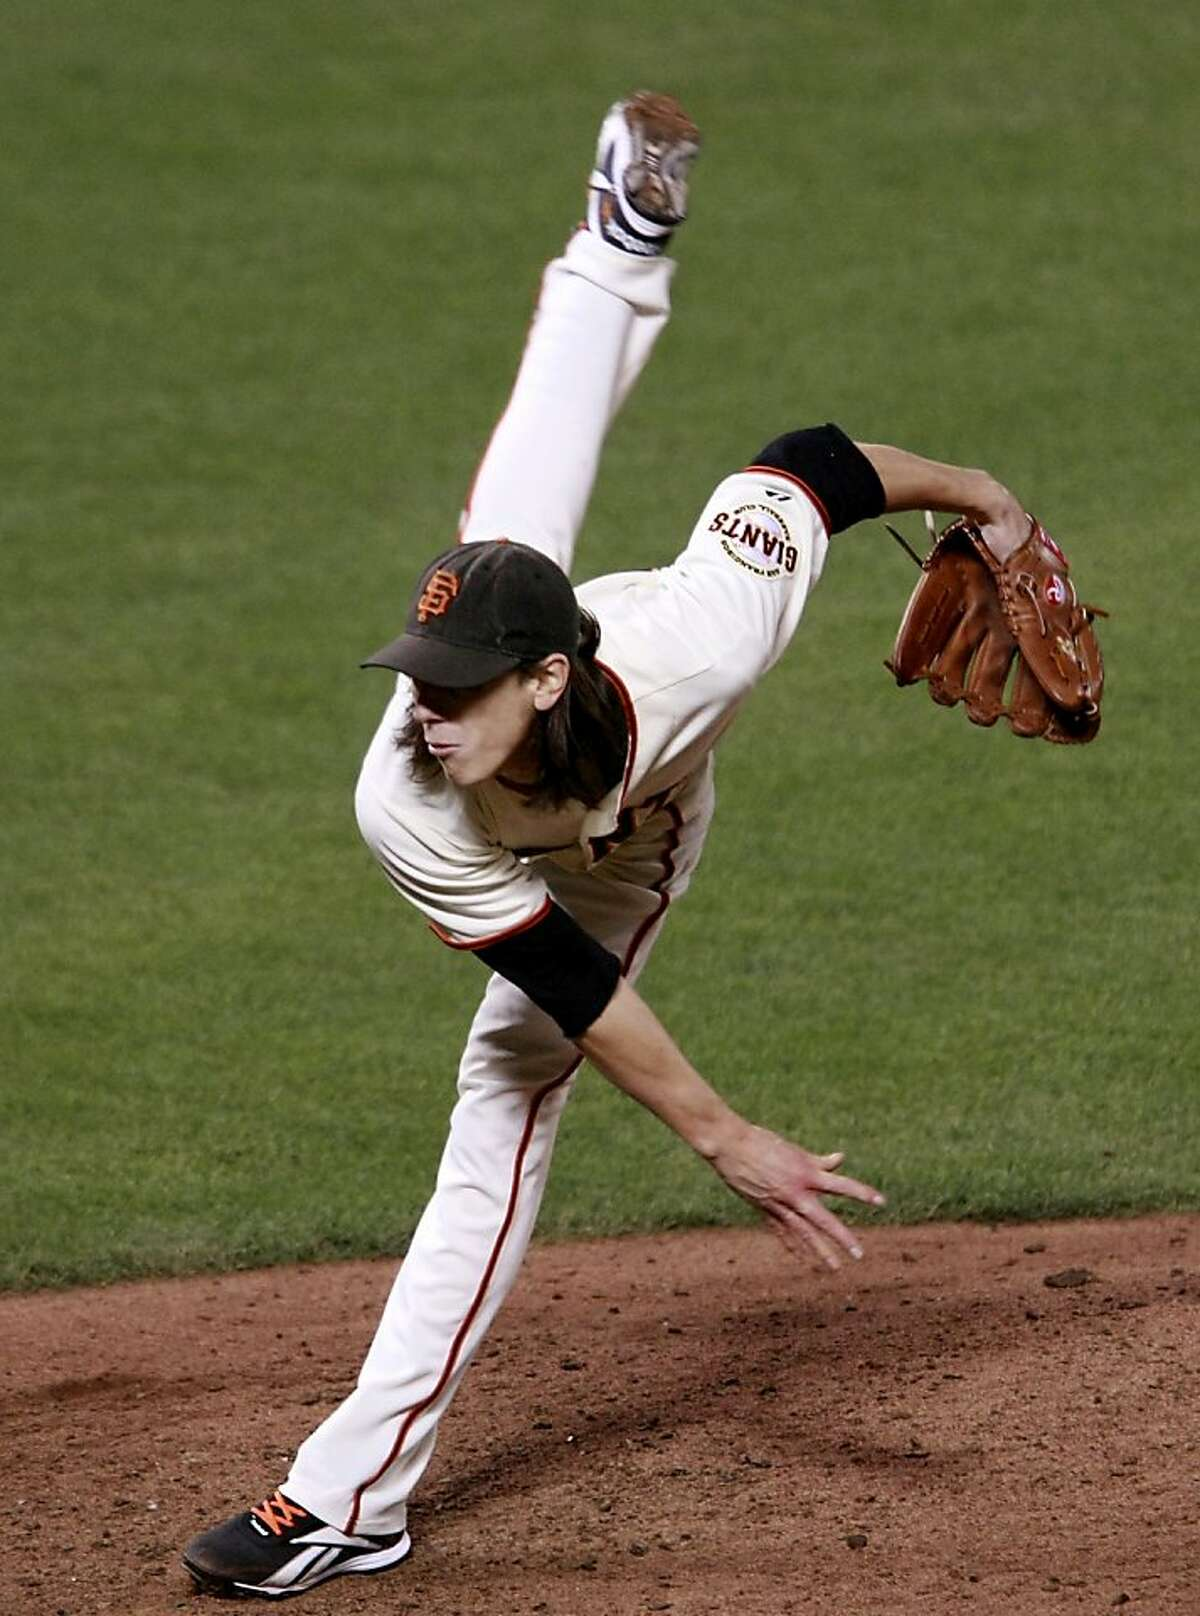 Tim Lincecum in action during the 9th inning. The San Francisco Giants vs the Atlanta Braves Thursday October 7, 2010 at AT&T park in San Francisco, Calif.